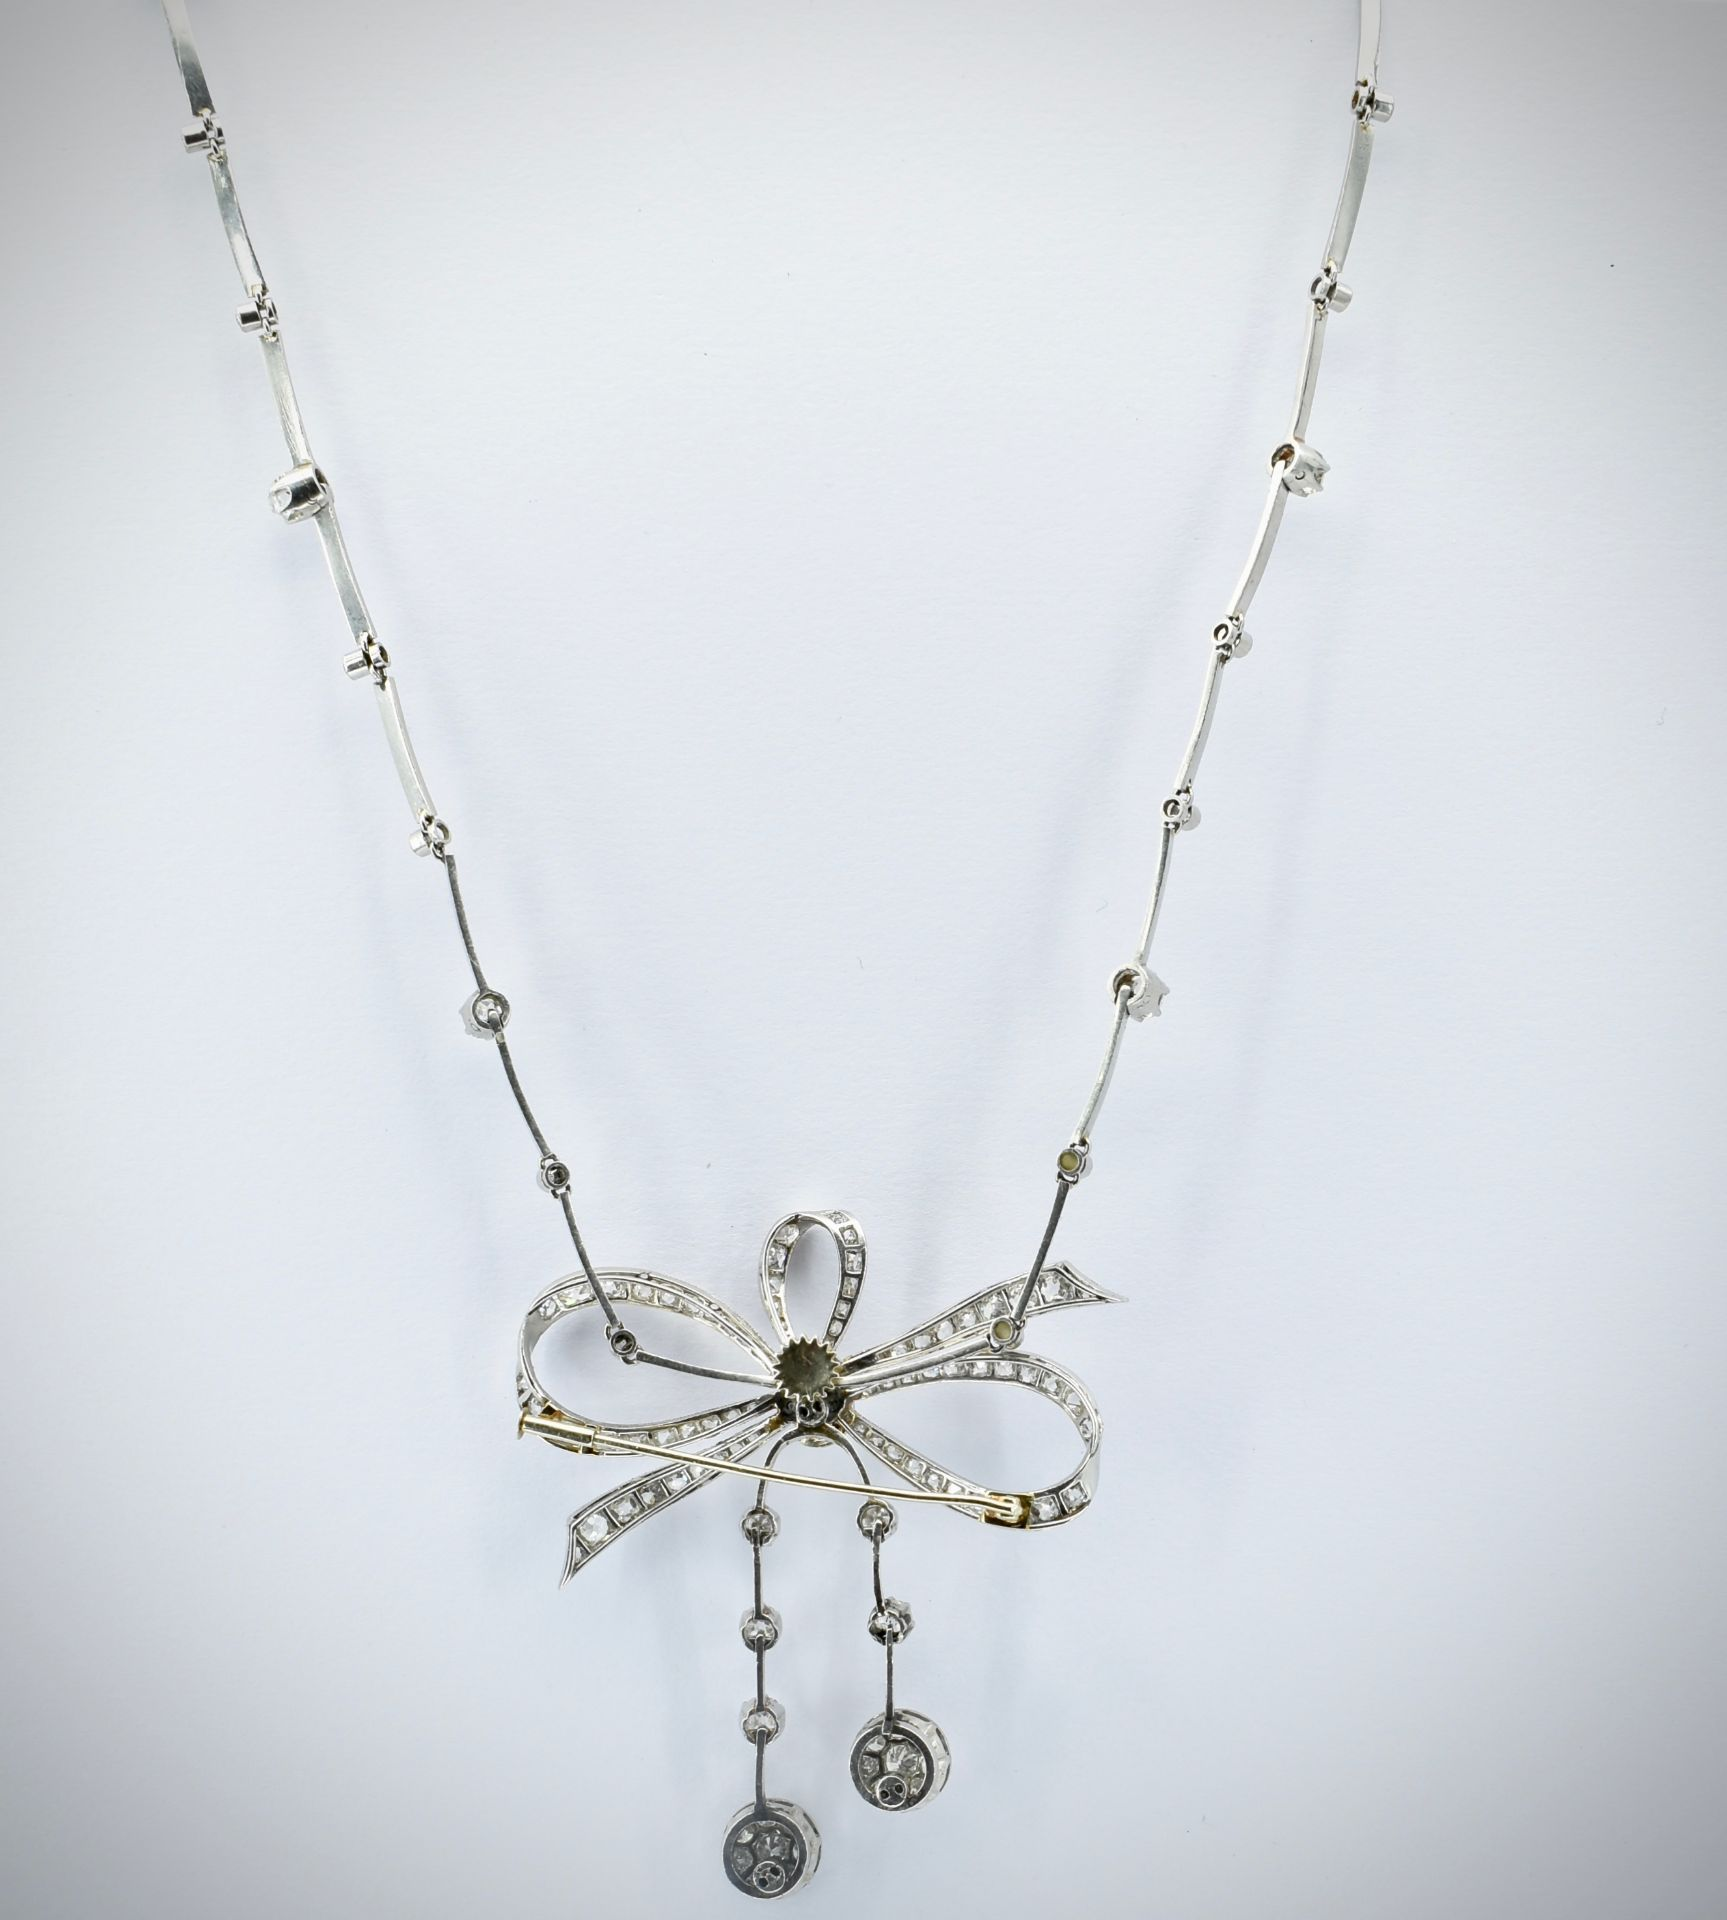 French 18ct Gold Platinum & Diamond Collar Necklace - Image 5 of 9